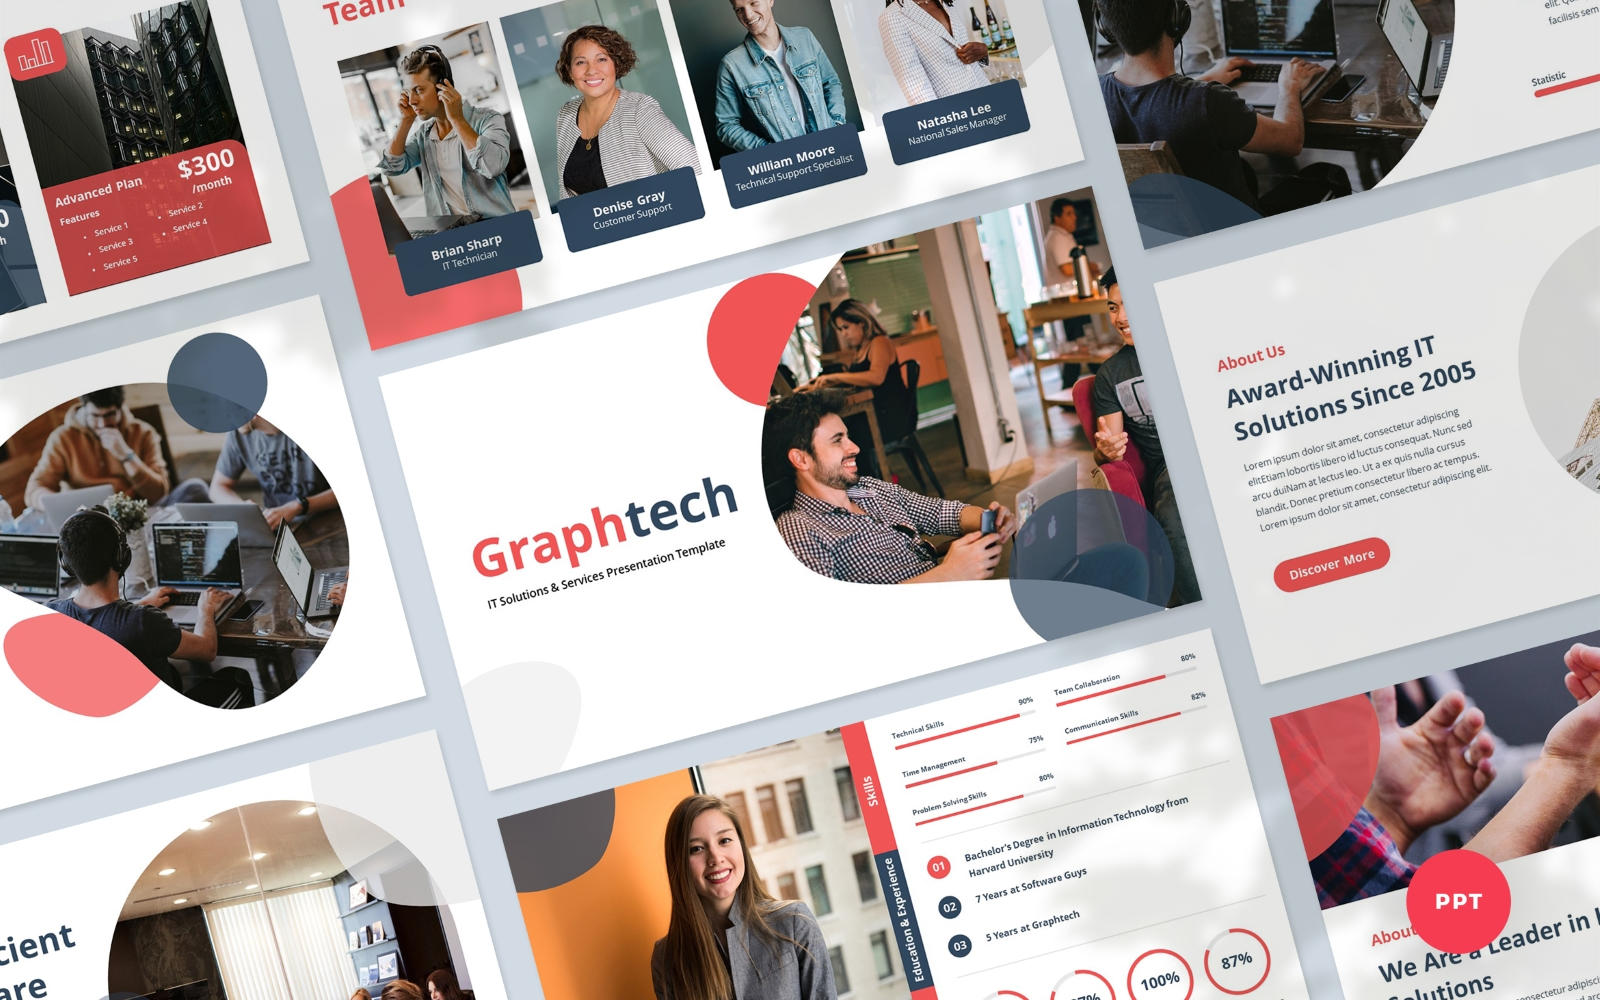 Graphtech - IT Solutions and Services PowerPoint Presentation Template